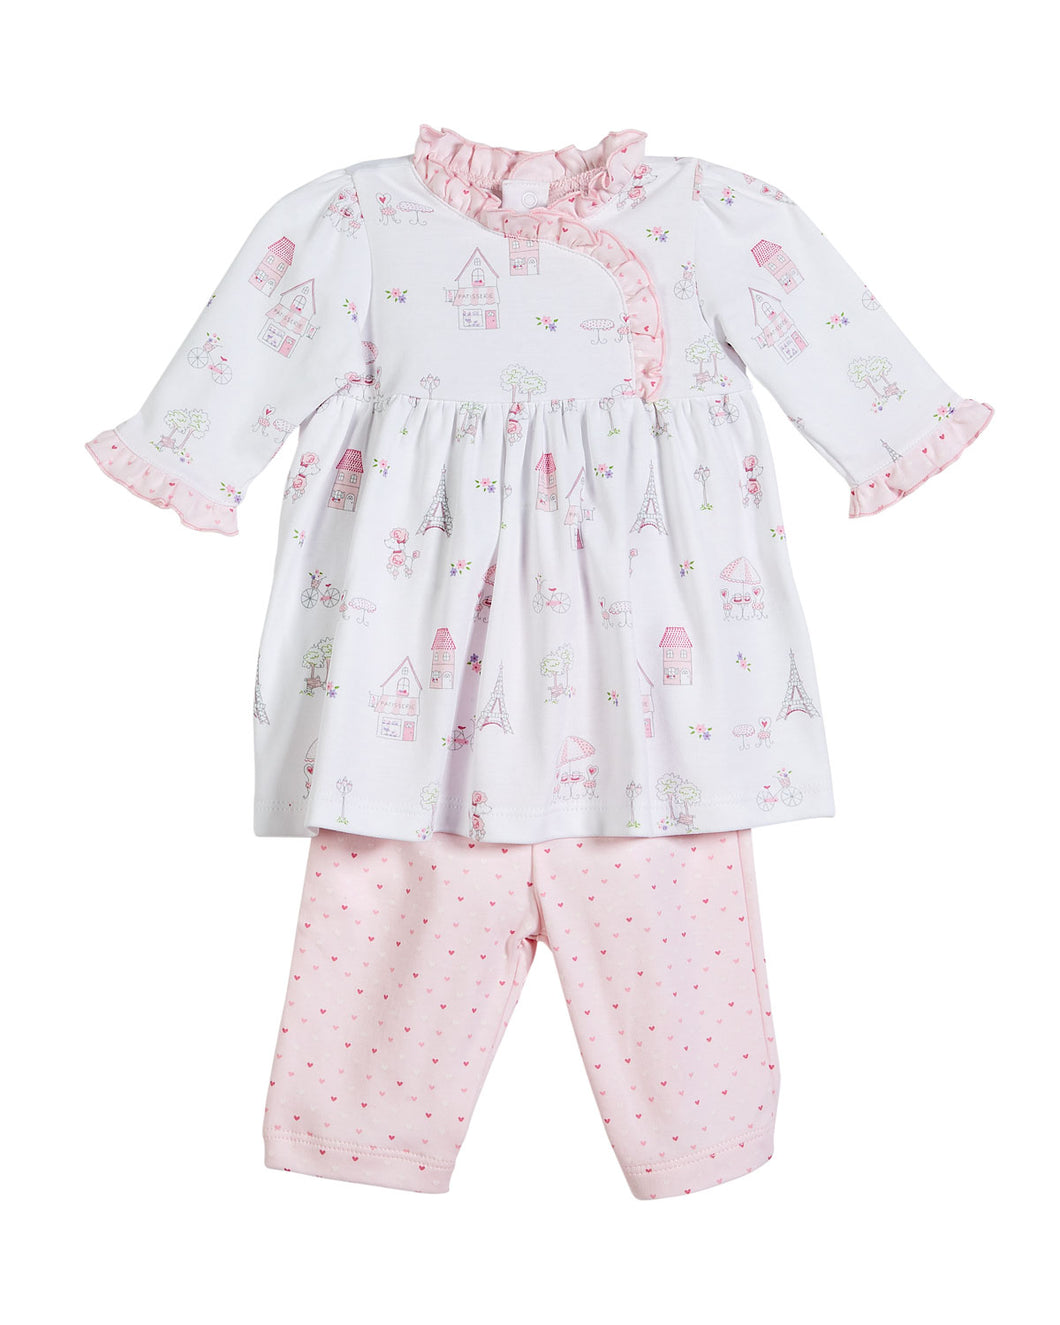 Kissy Kissy Paris Dress Set